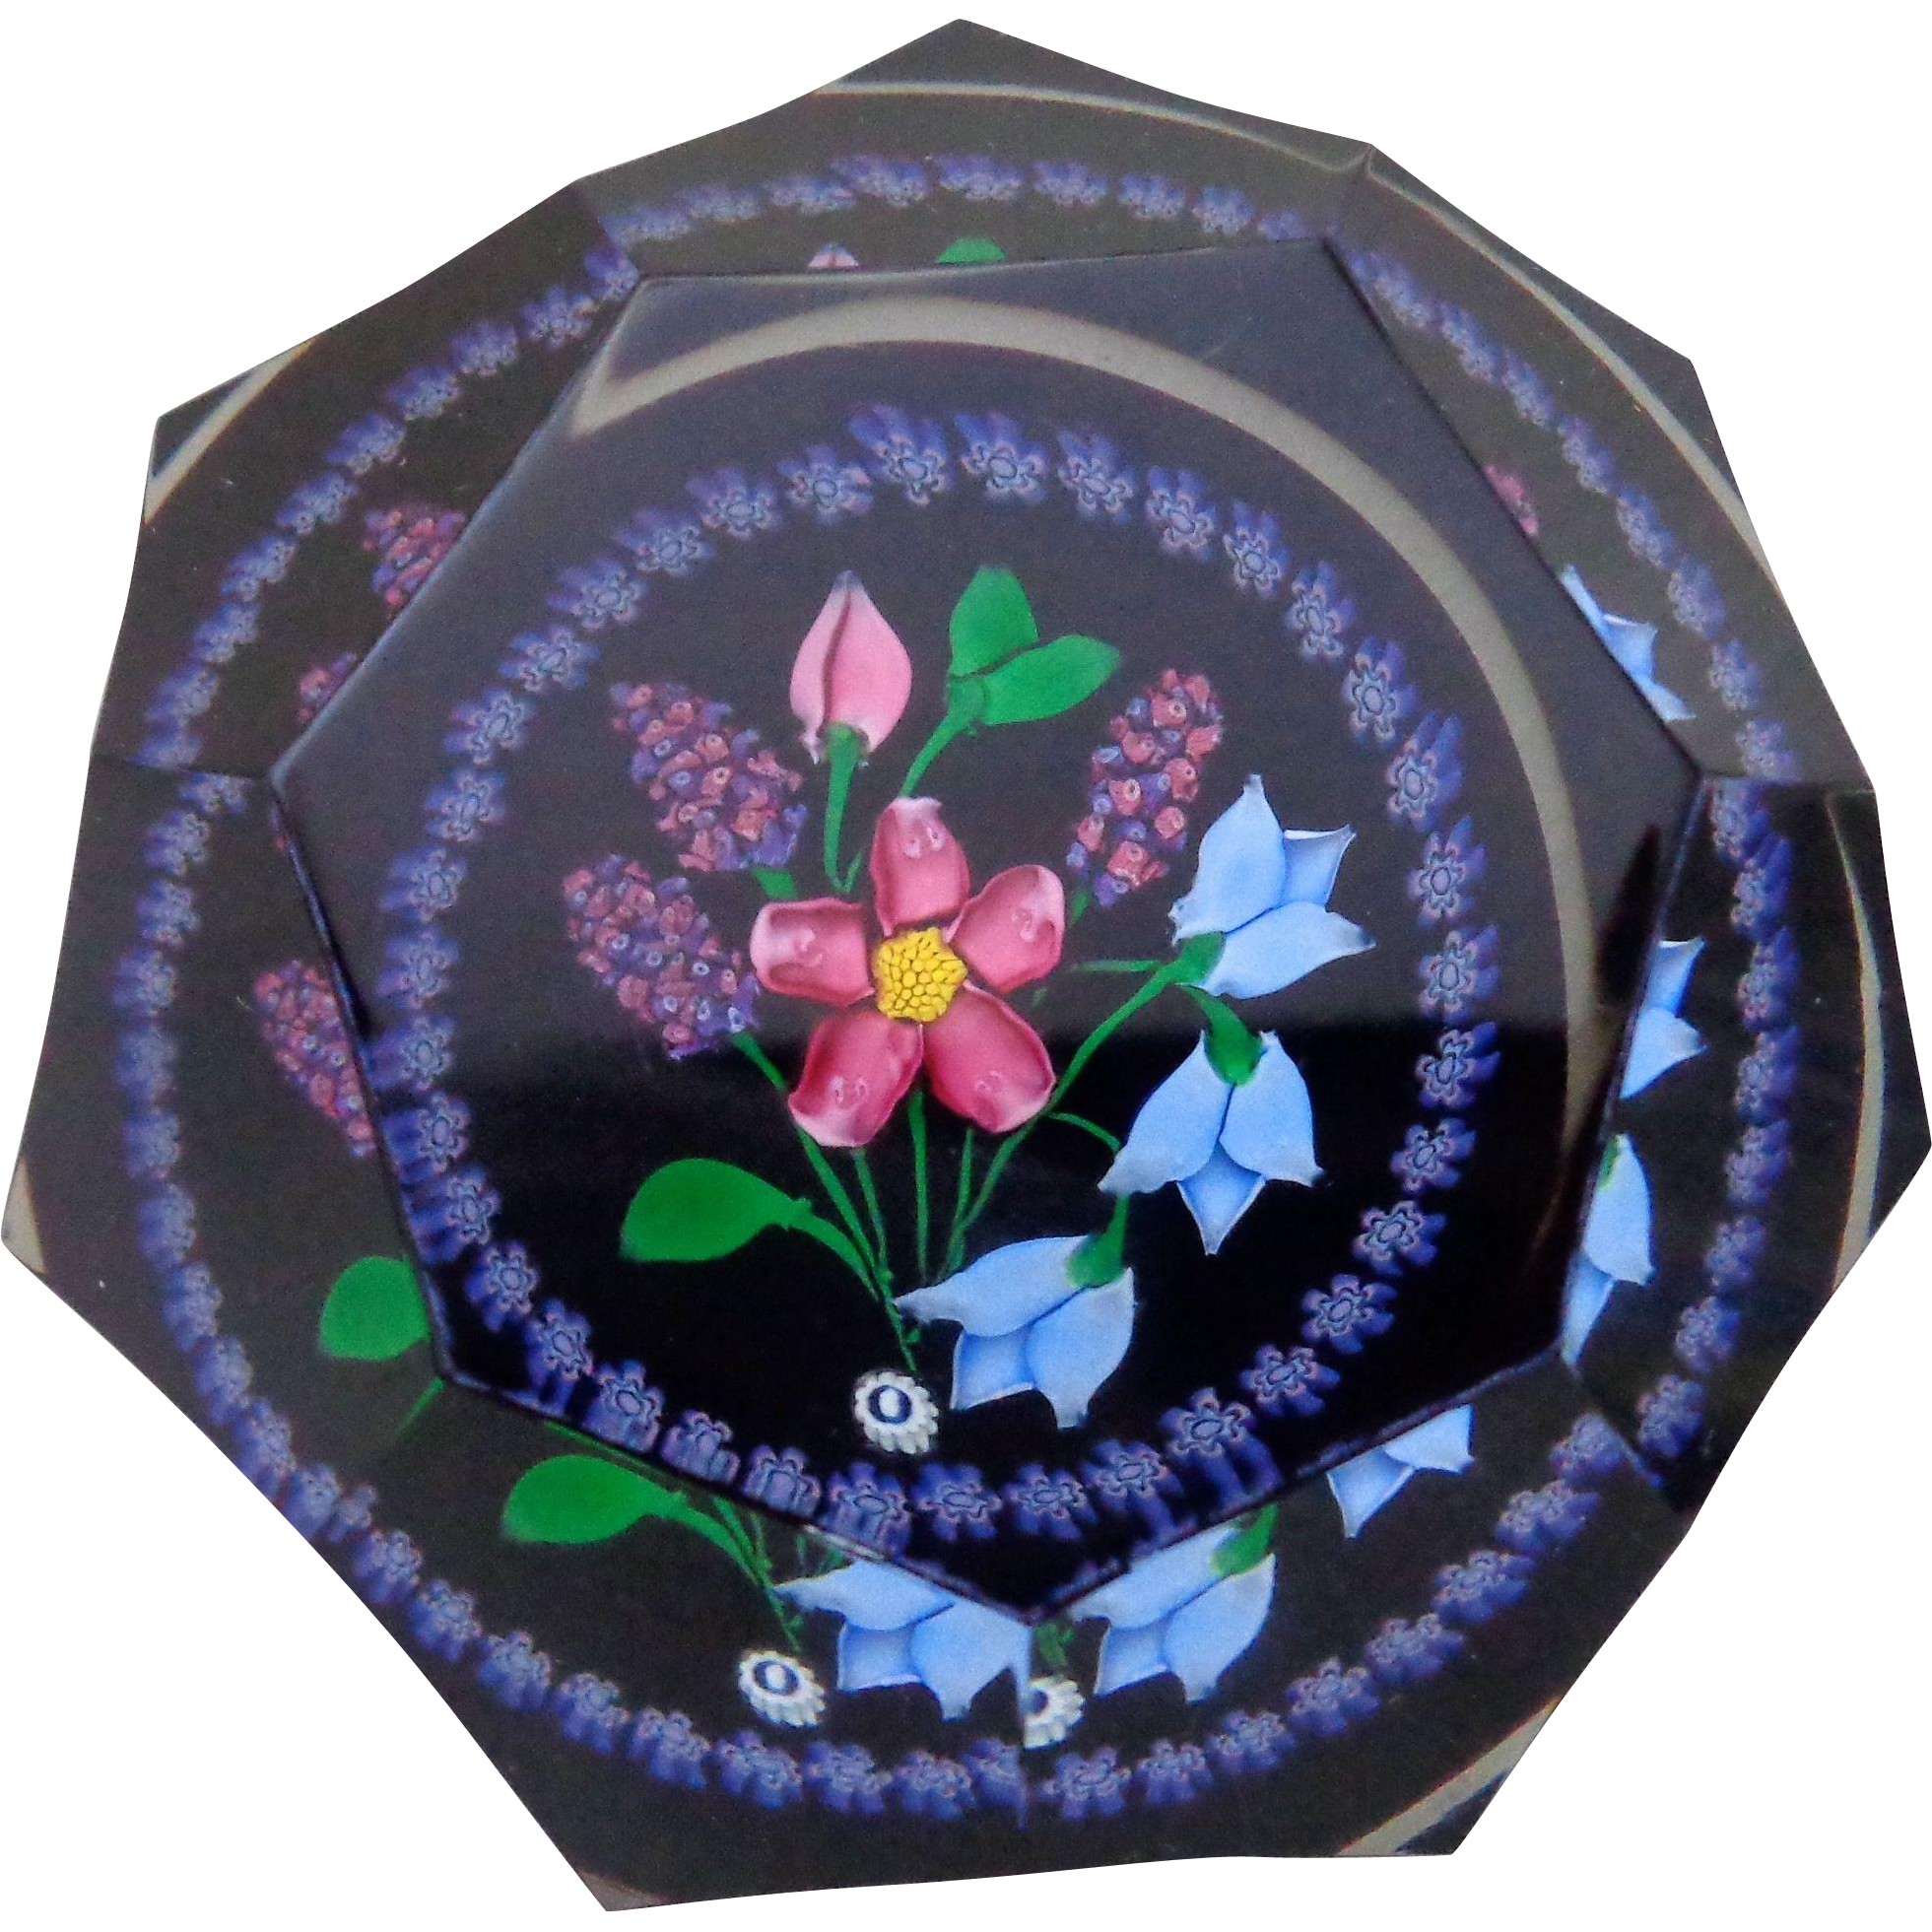 1998 Whitefriars Caithness Glass Rosette Fleming Hyacinth Bouquet Paperweight in Box #20